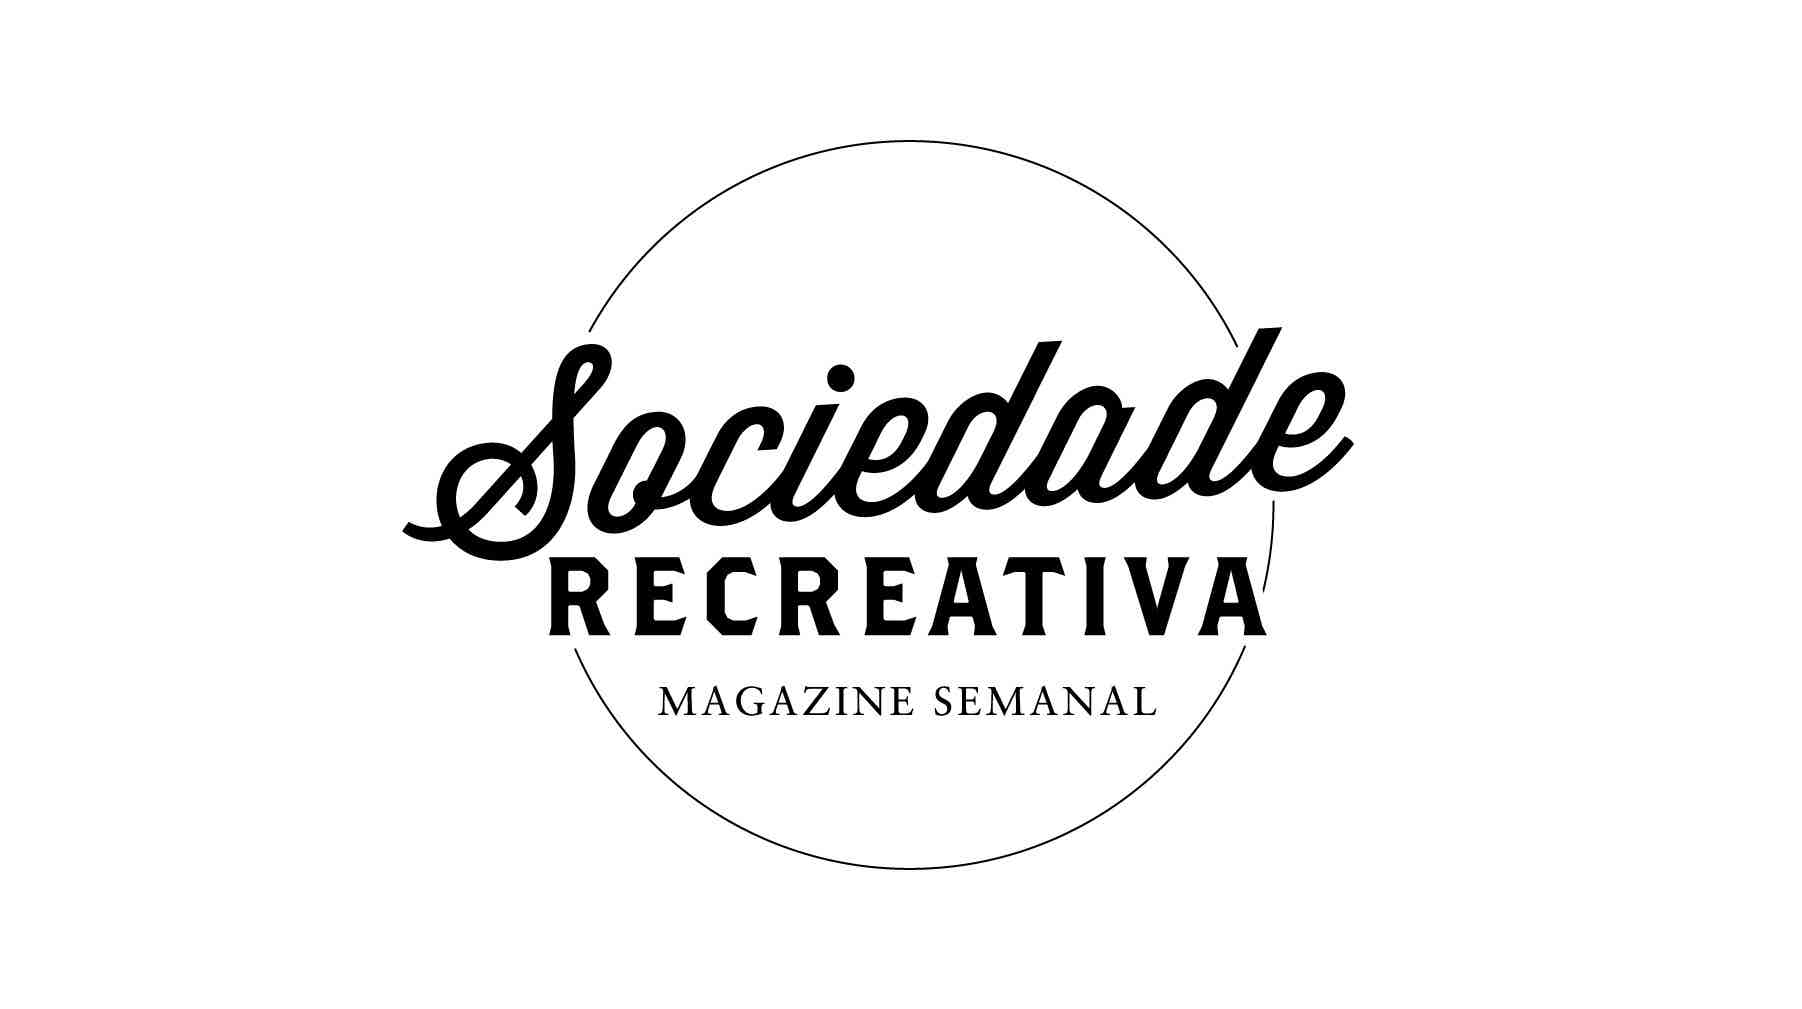 Sociedade Recreativa - Temporada I